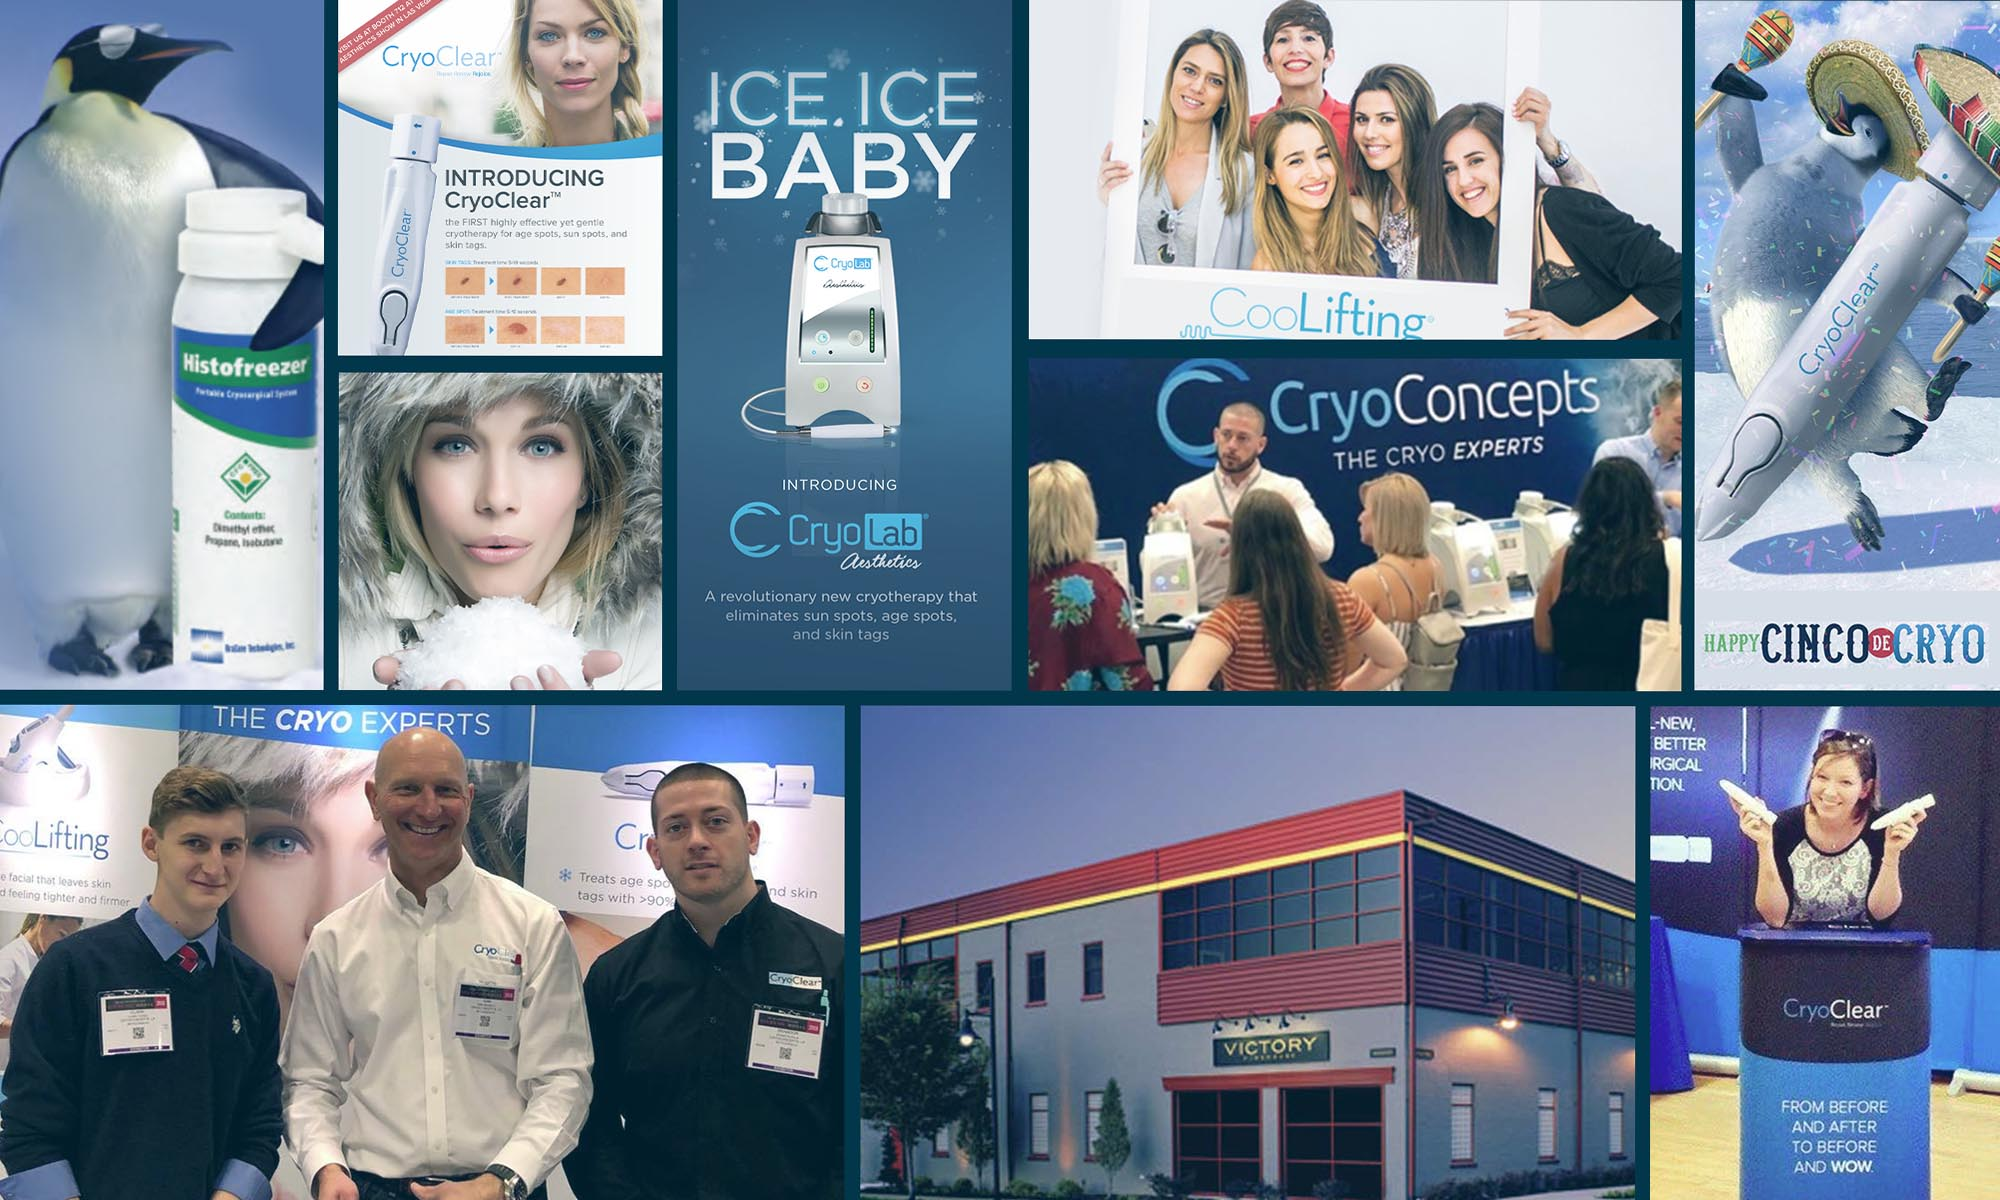 CryoConcepts cryo-based products for treating sun spots, age spots and skin tags